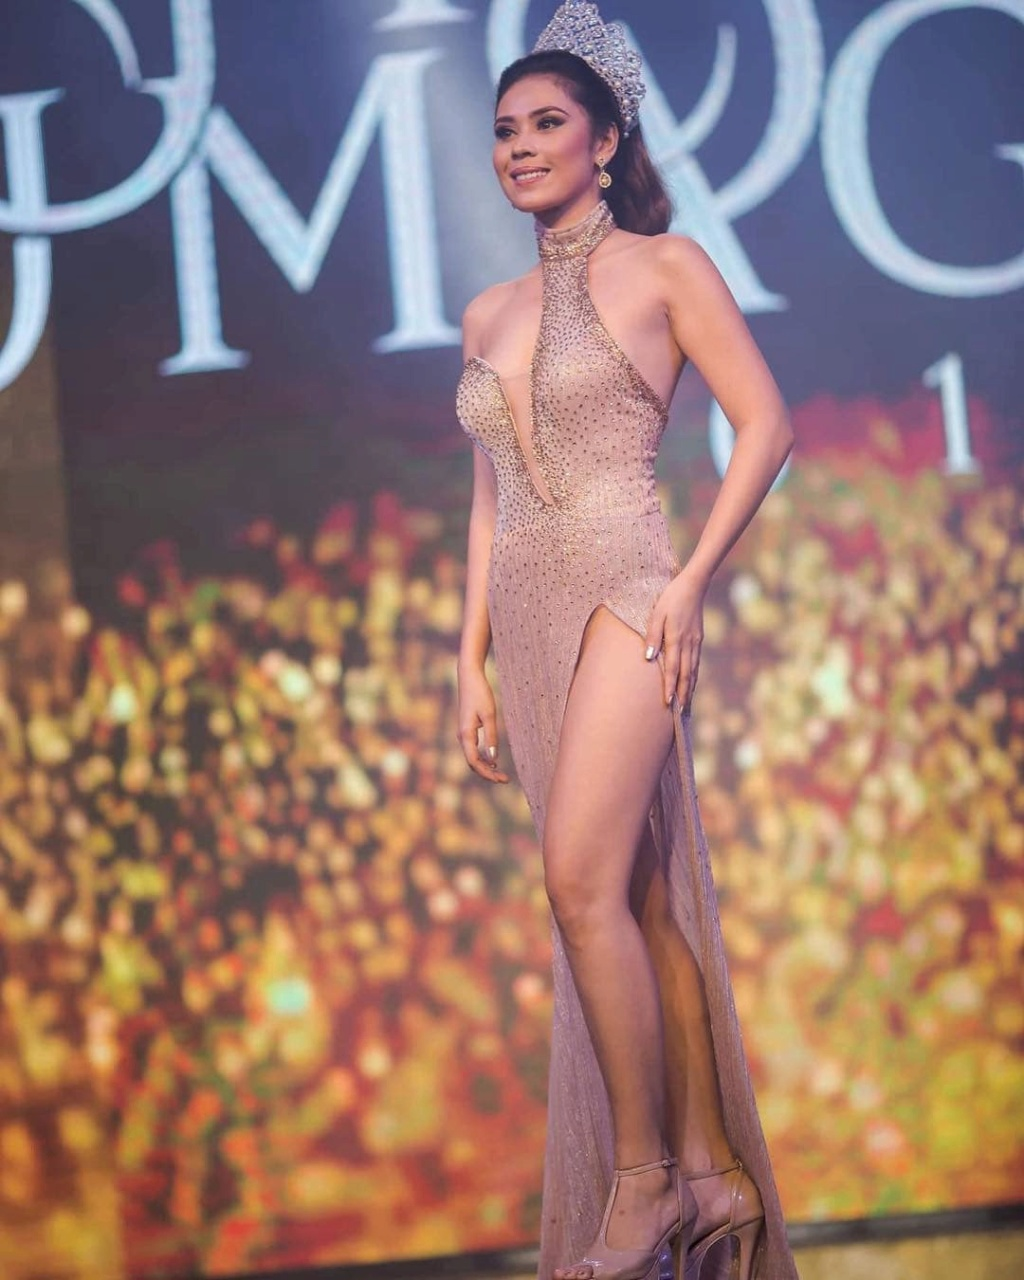 Road to Binibining Pilipinas 2019 - Results!! - Page 7 53769910